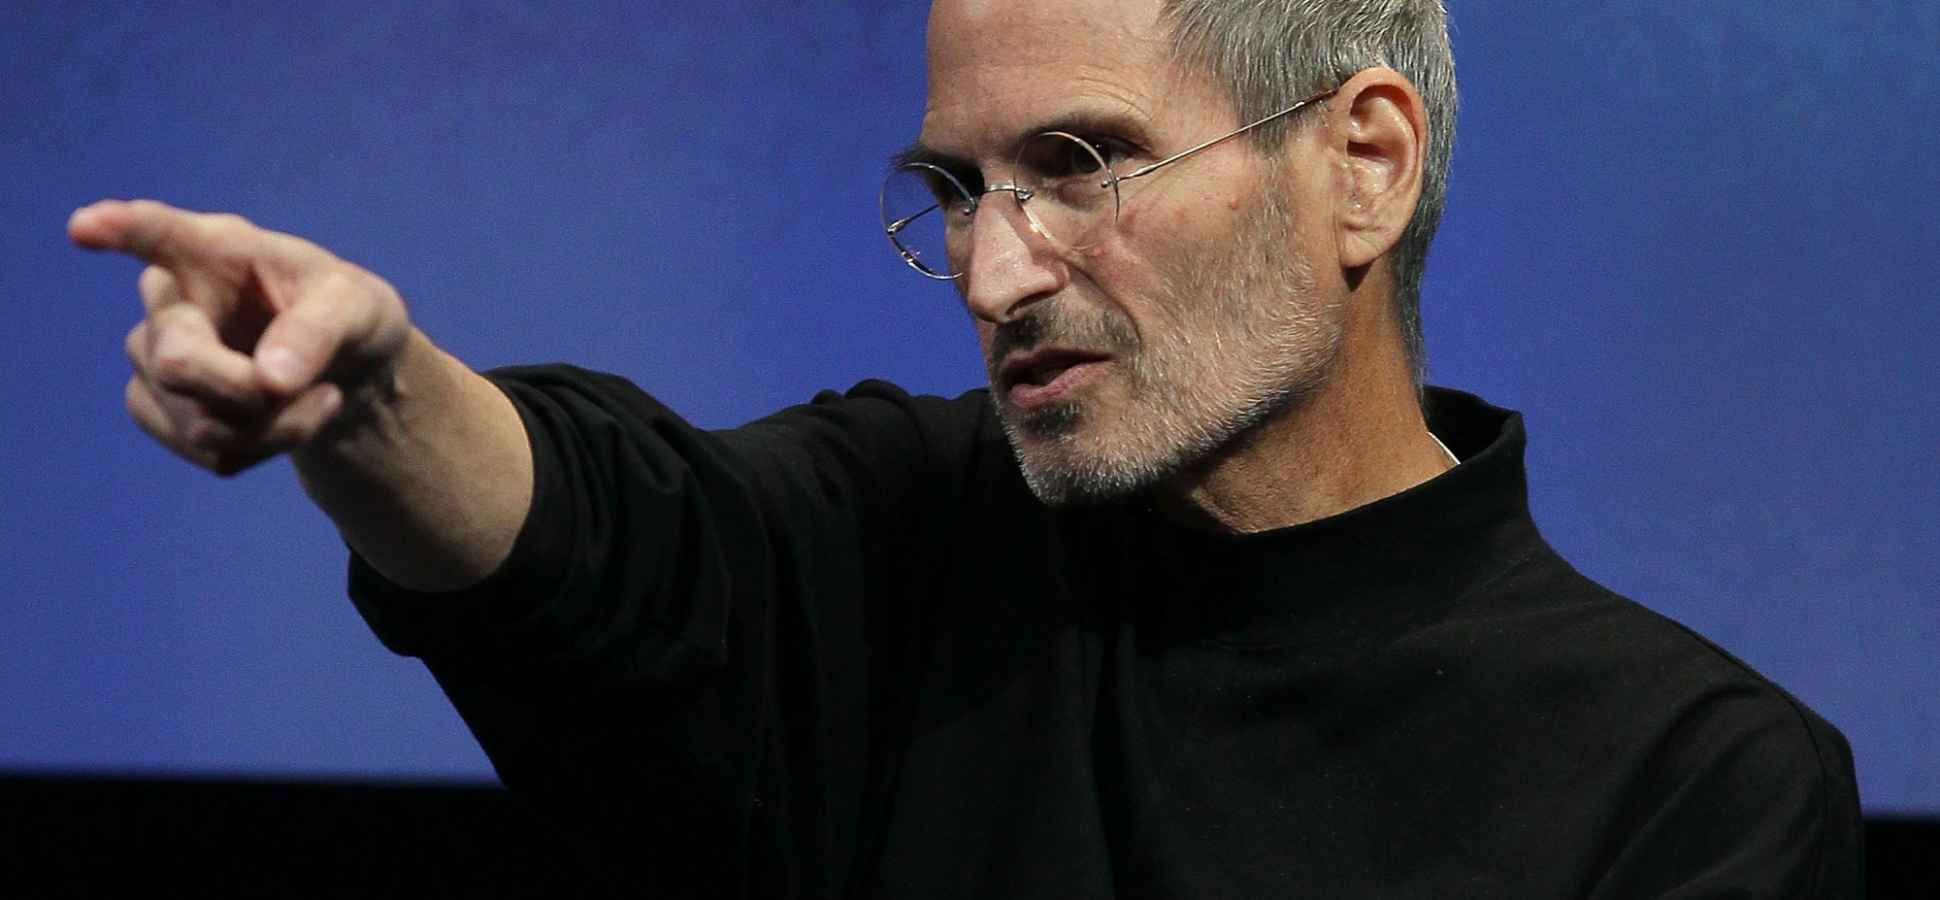 The 1 Leadership Quality Steve Jobs, Elon Musk, and Marc Benioff All Share